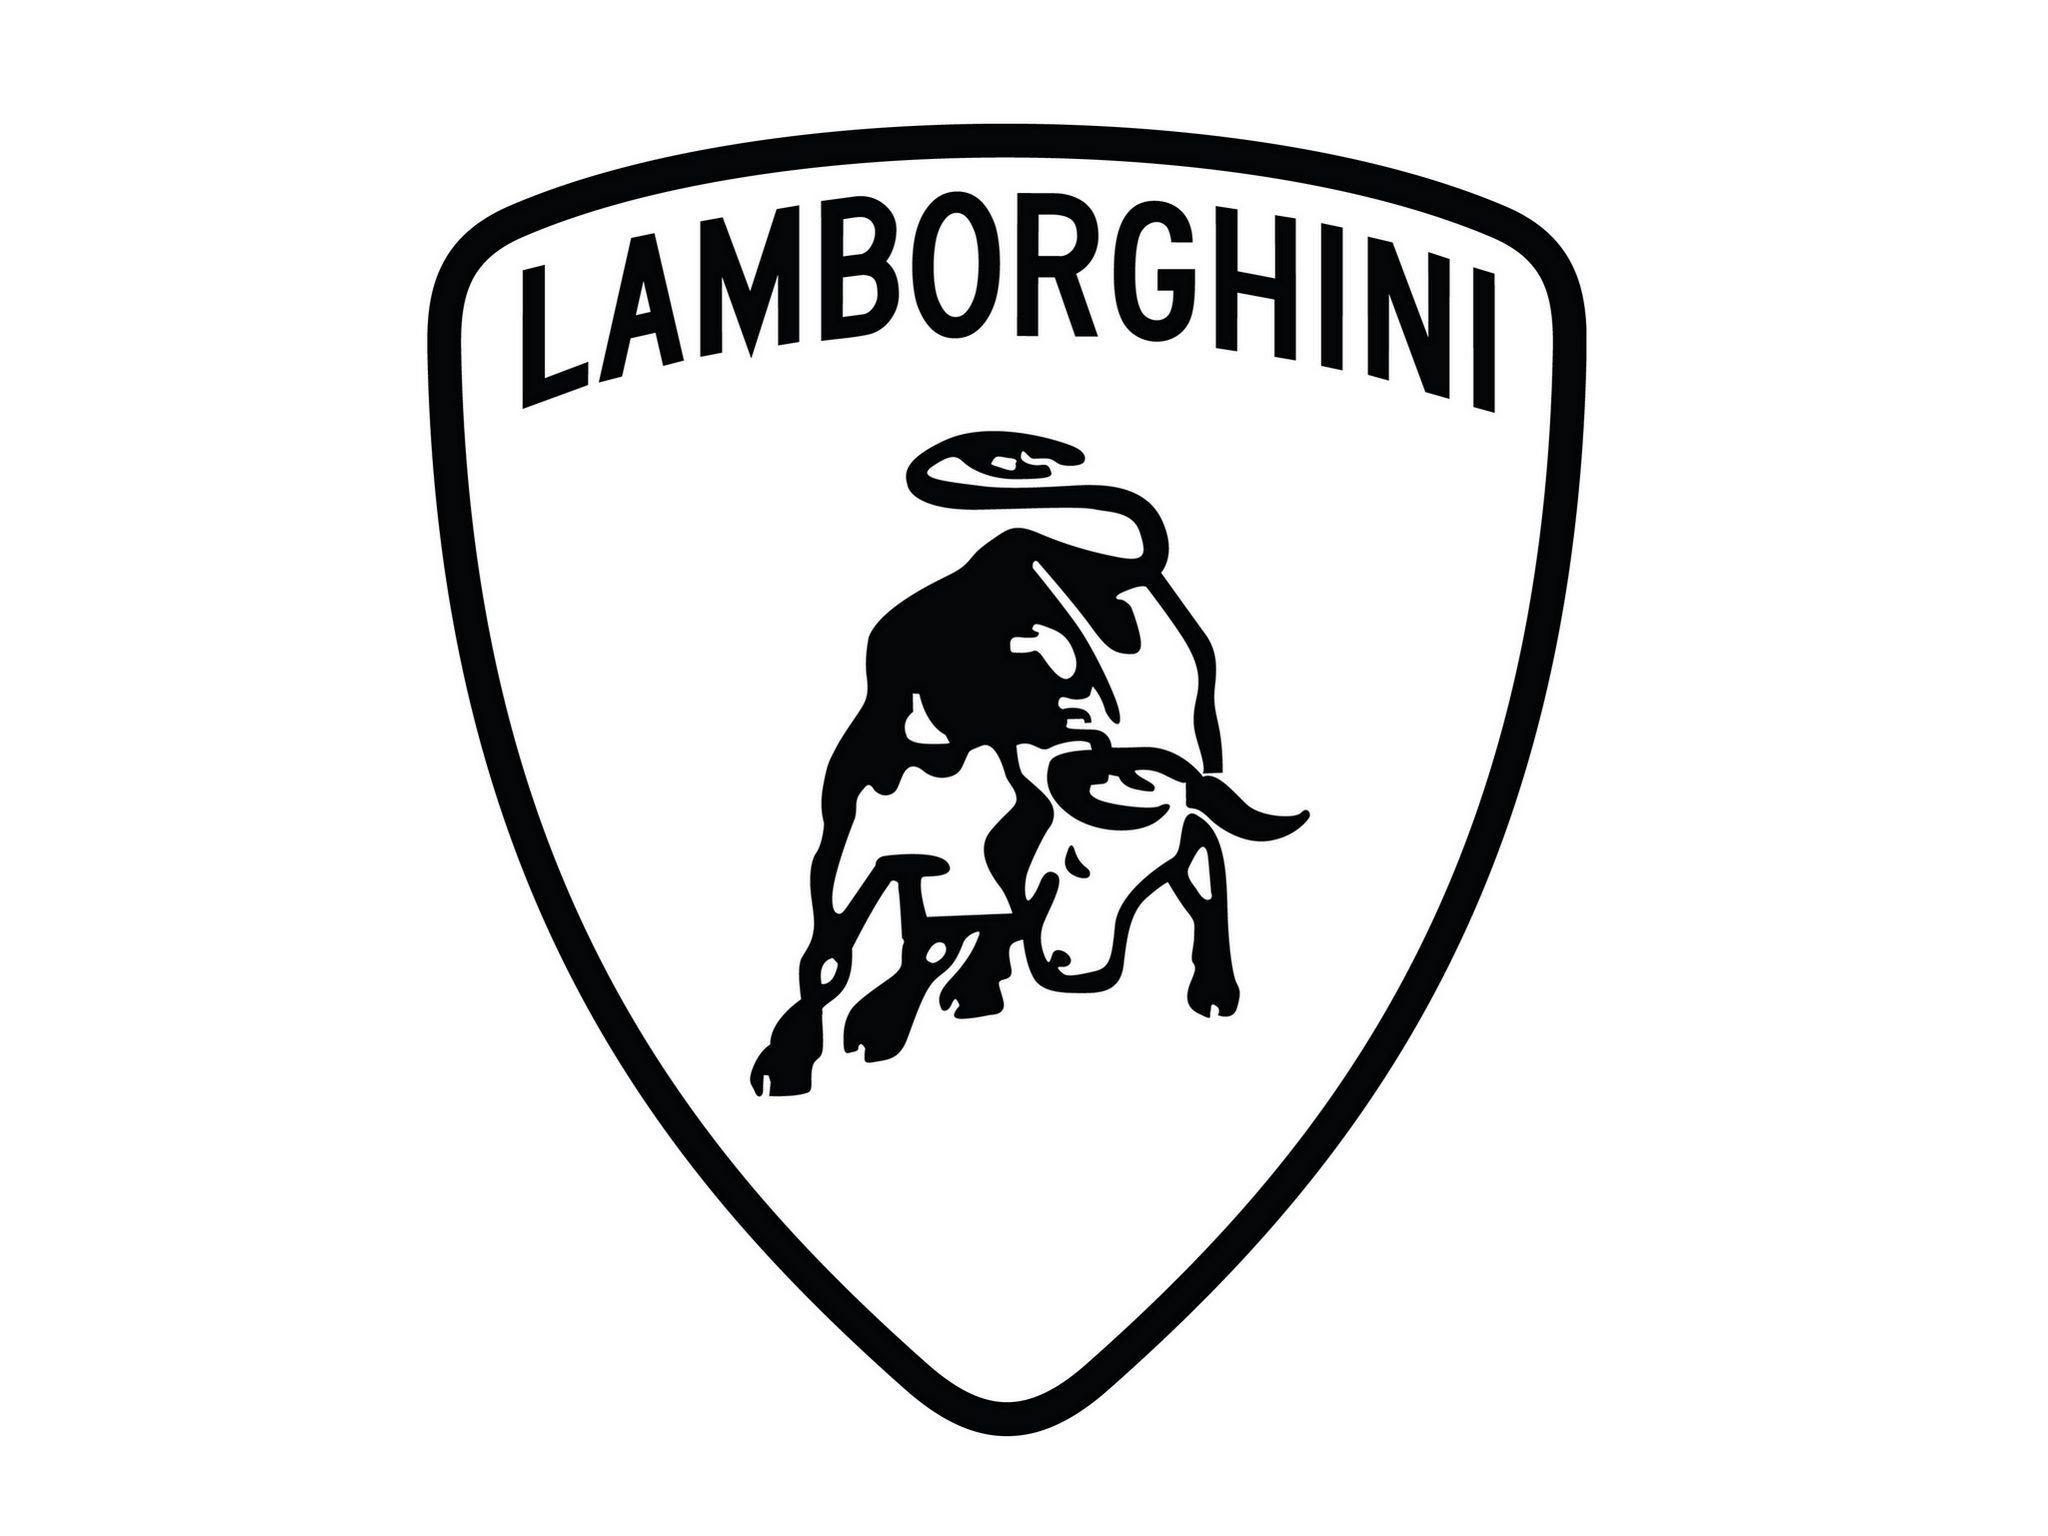 2304x1440 Lamborghini Logo Vector Wallpaper Free Desktop